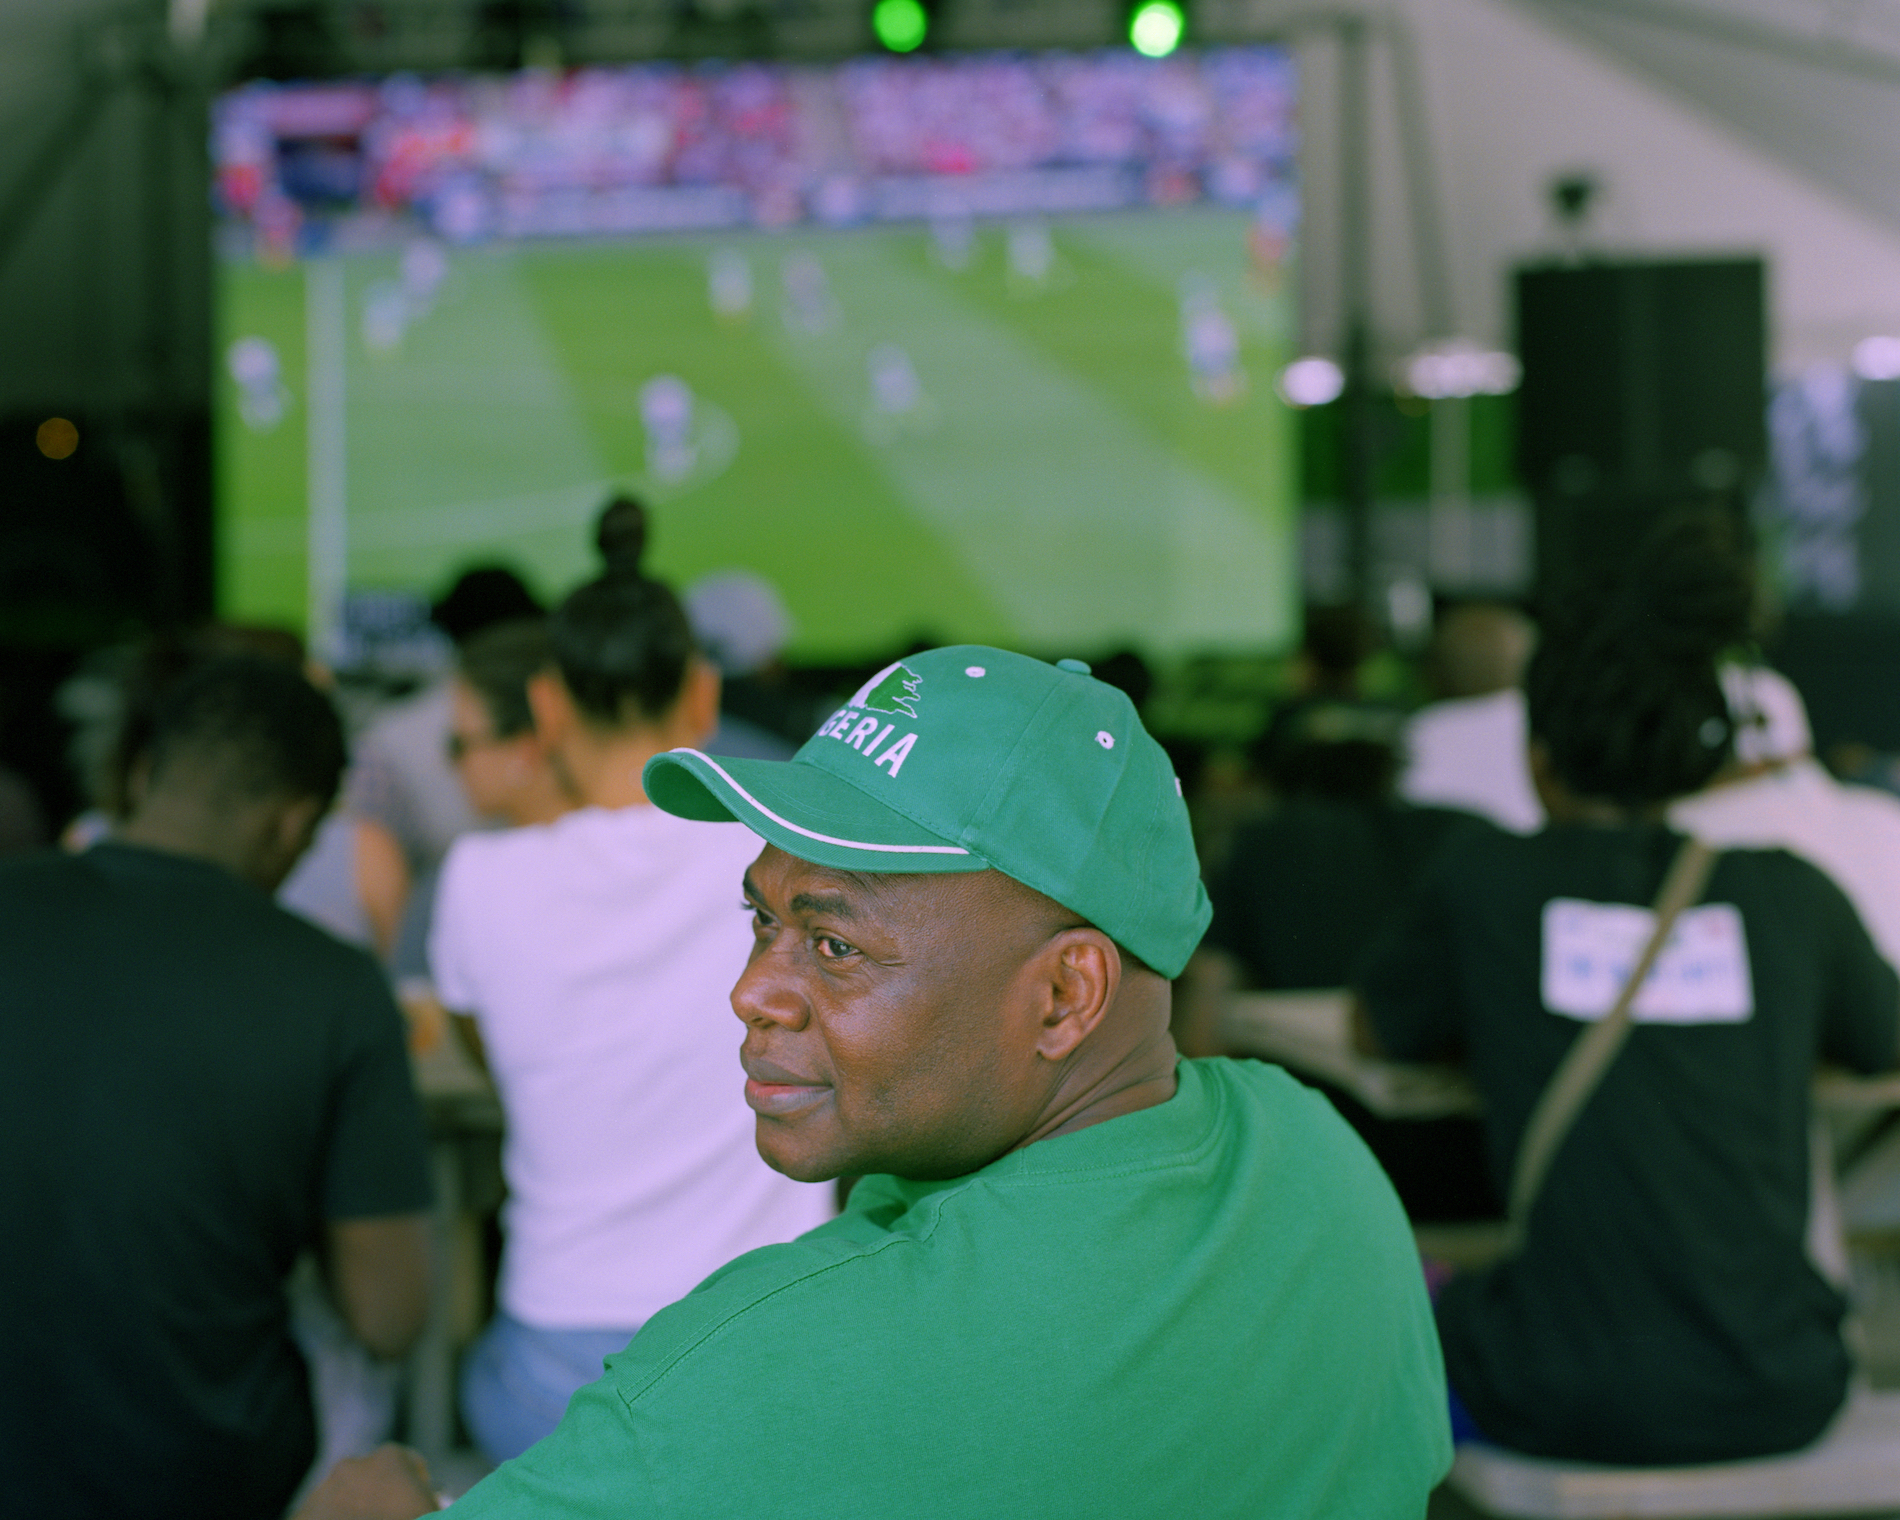 A fan watching a friendly match between Nigeria and England in Brooklyn, ahead of the 2018 World Cup.